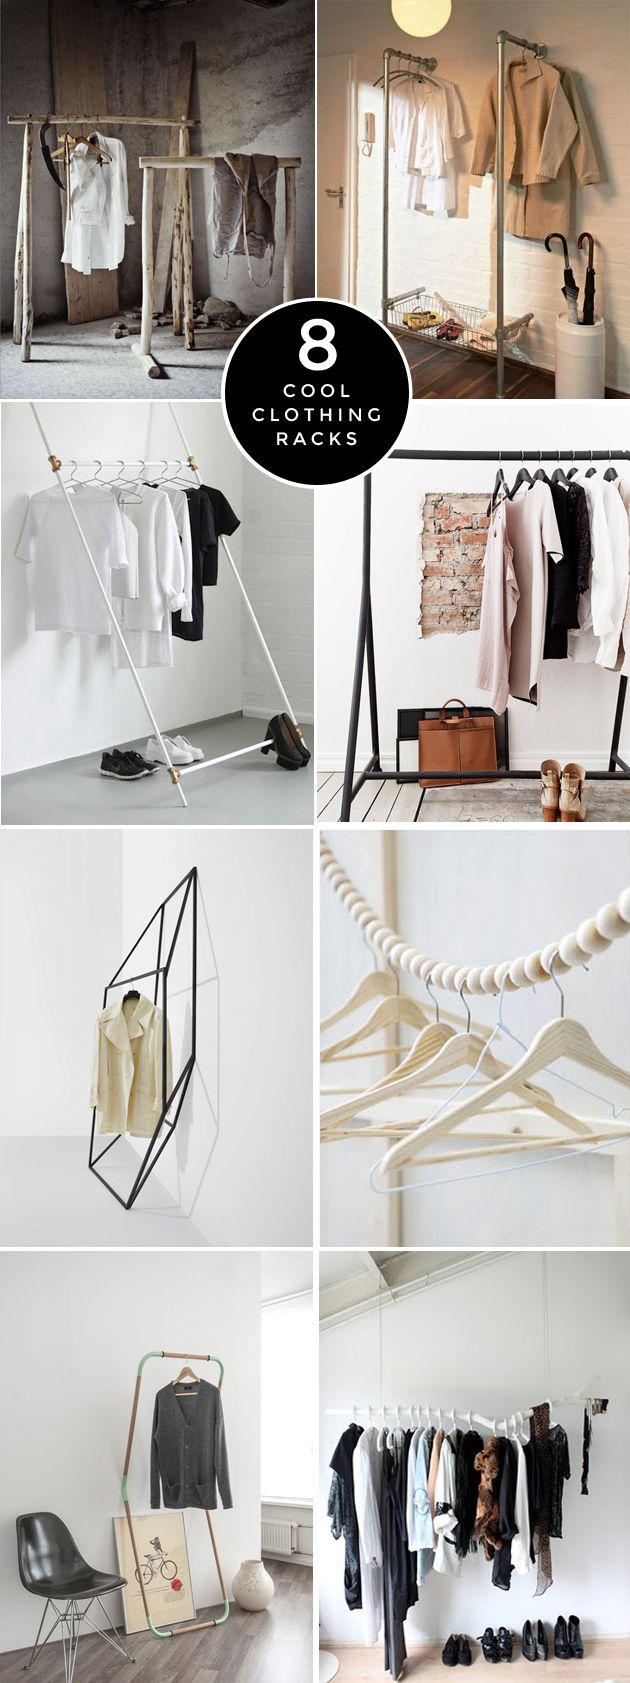 8 Cool Clothing Rack